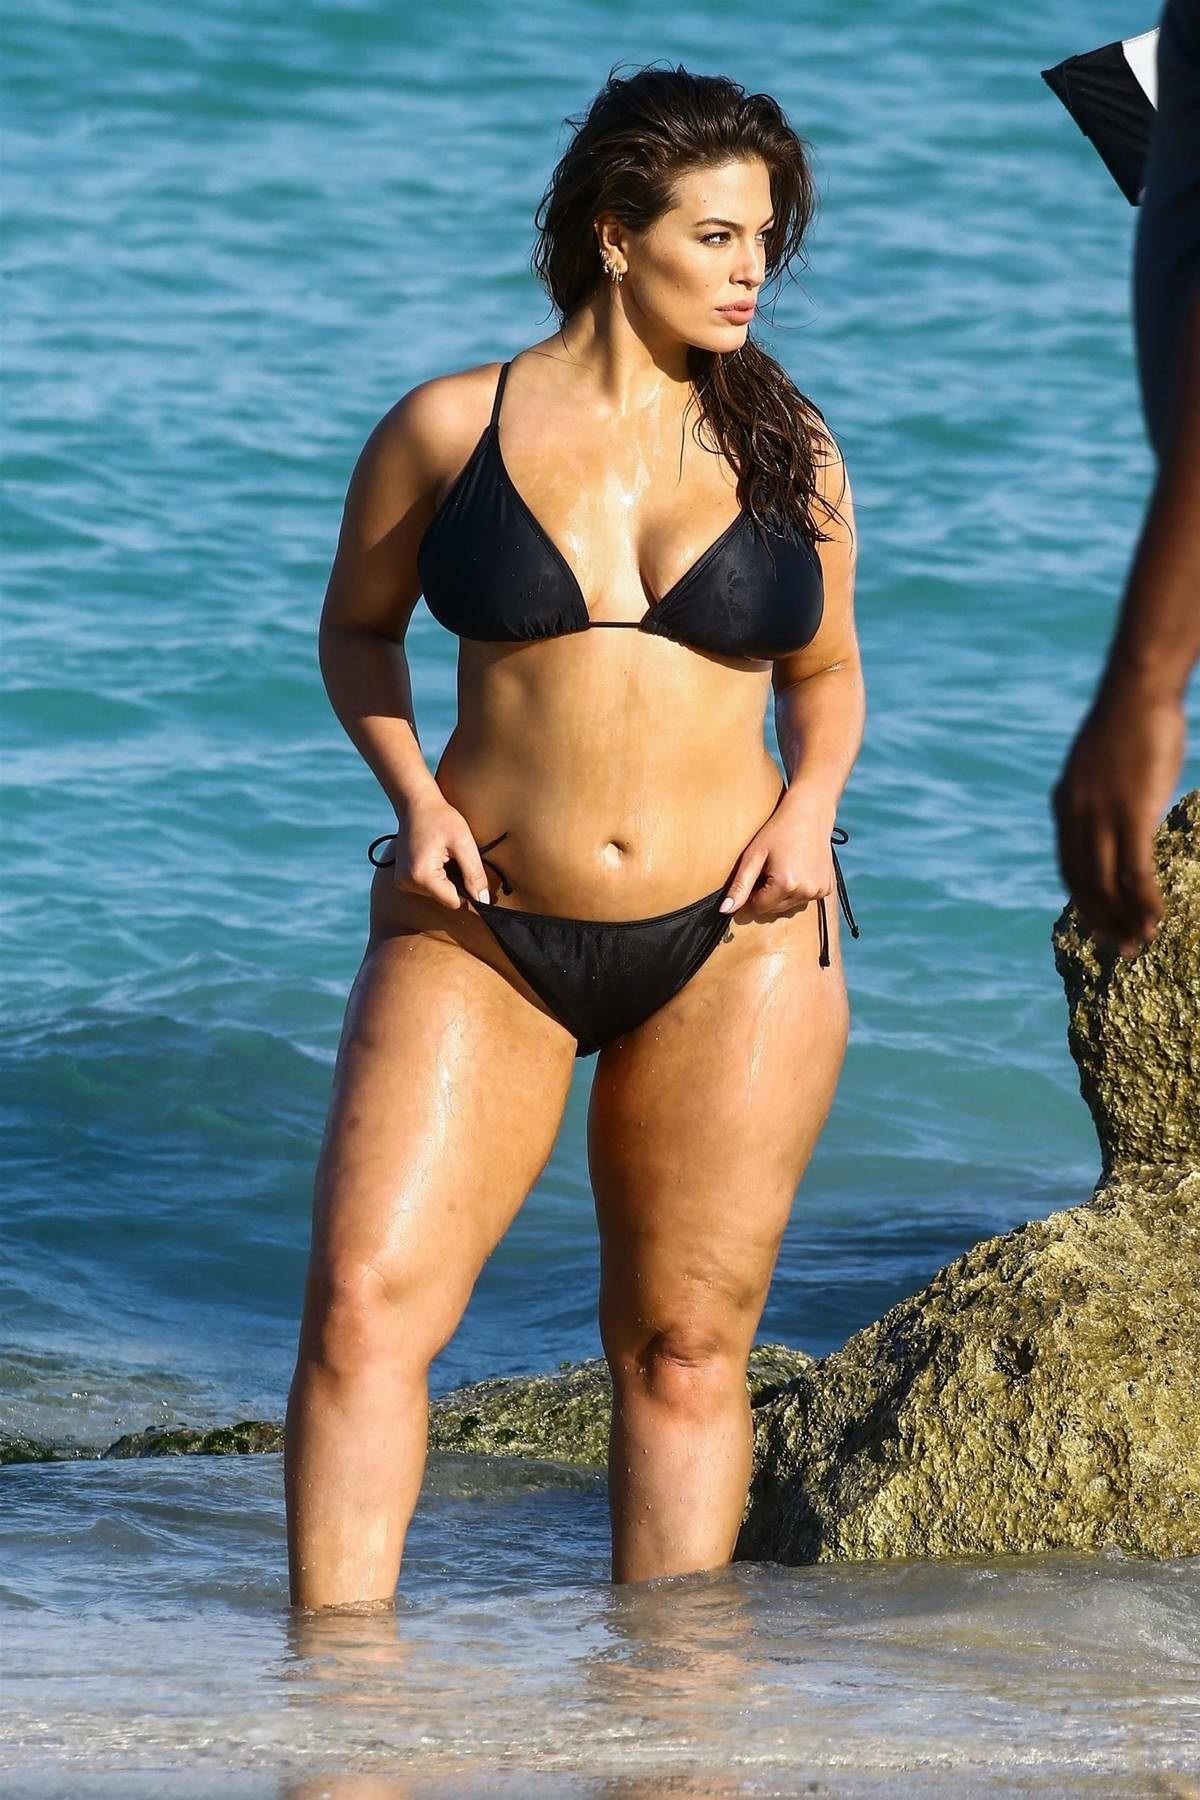 Ashley Graham sizzles in a black bikini during a photoshoot at the beach in Miami, Florida - Set 01